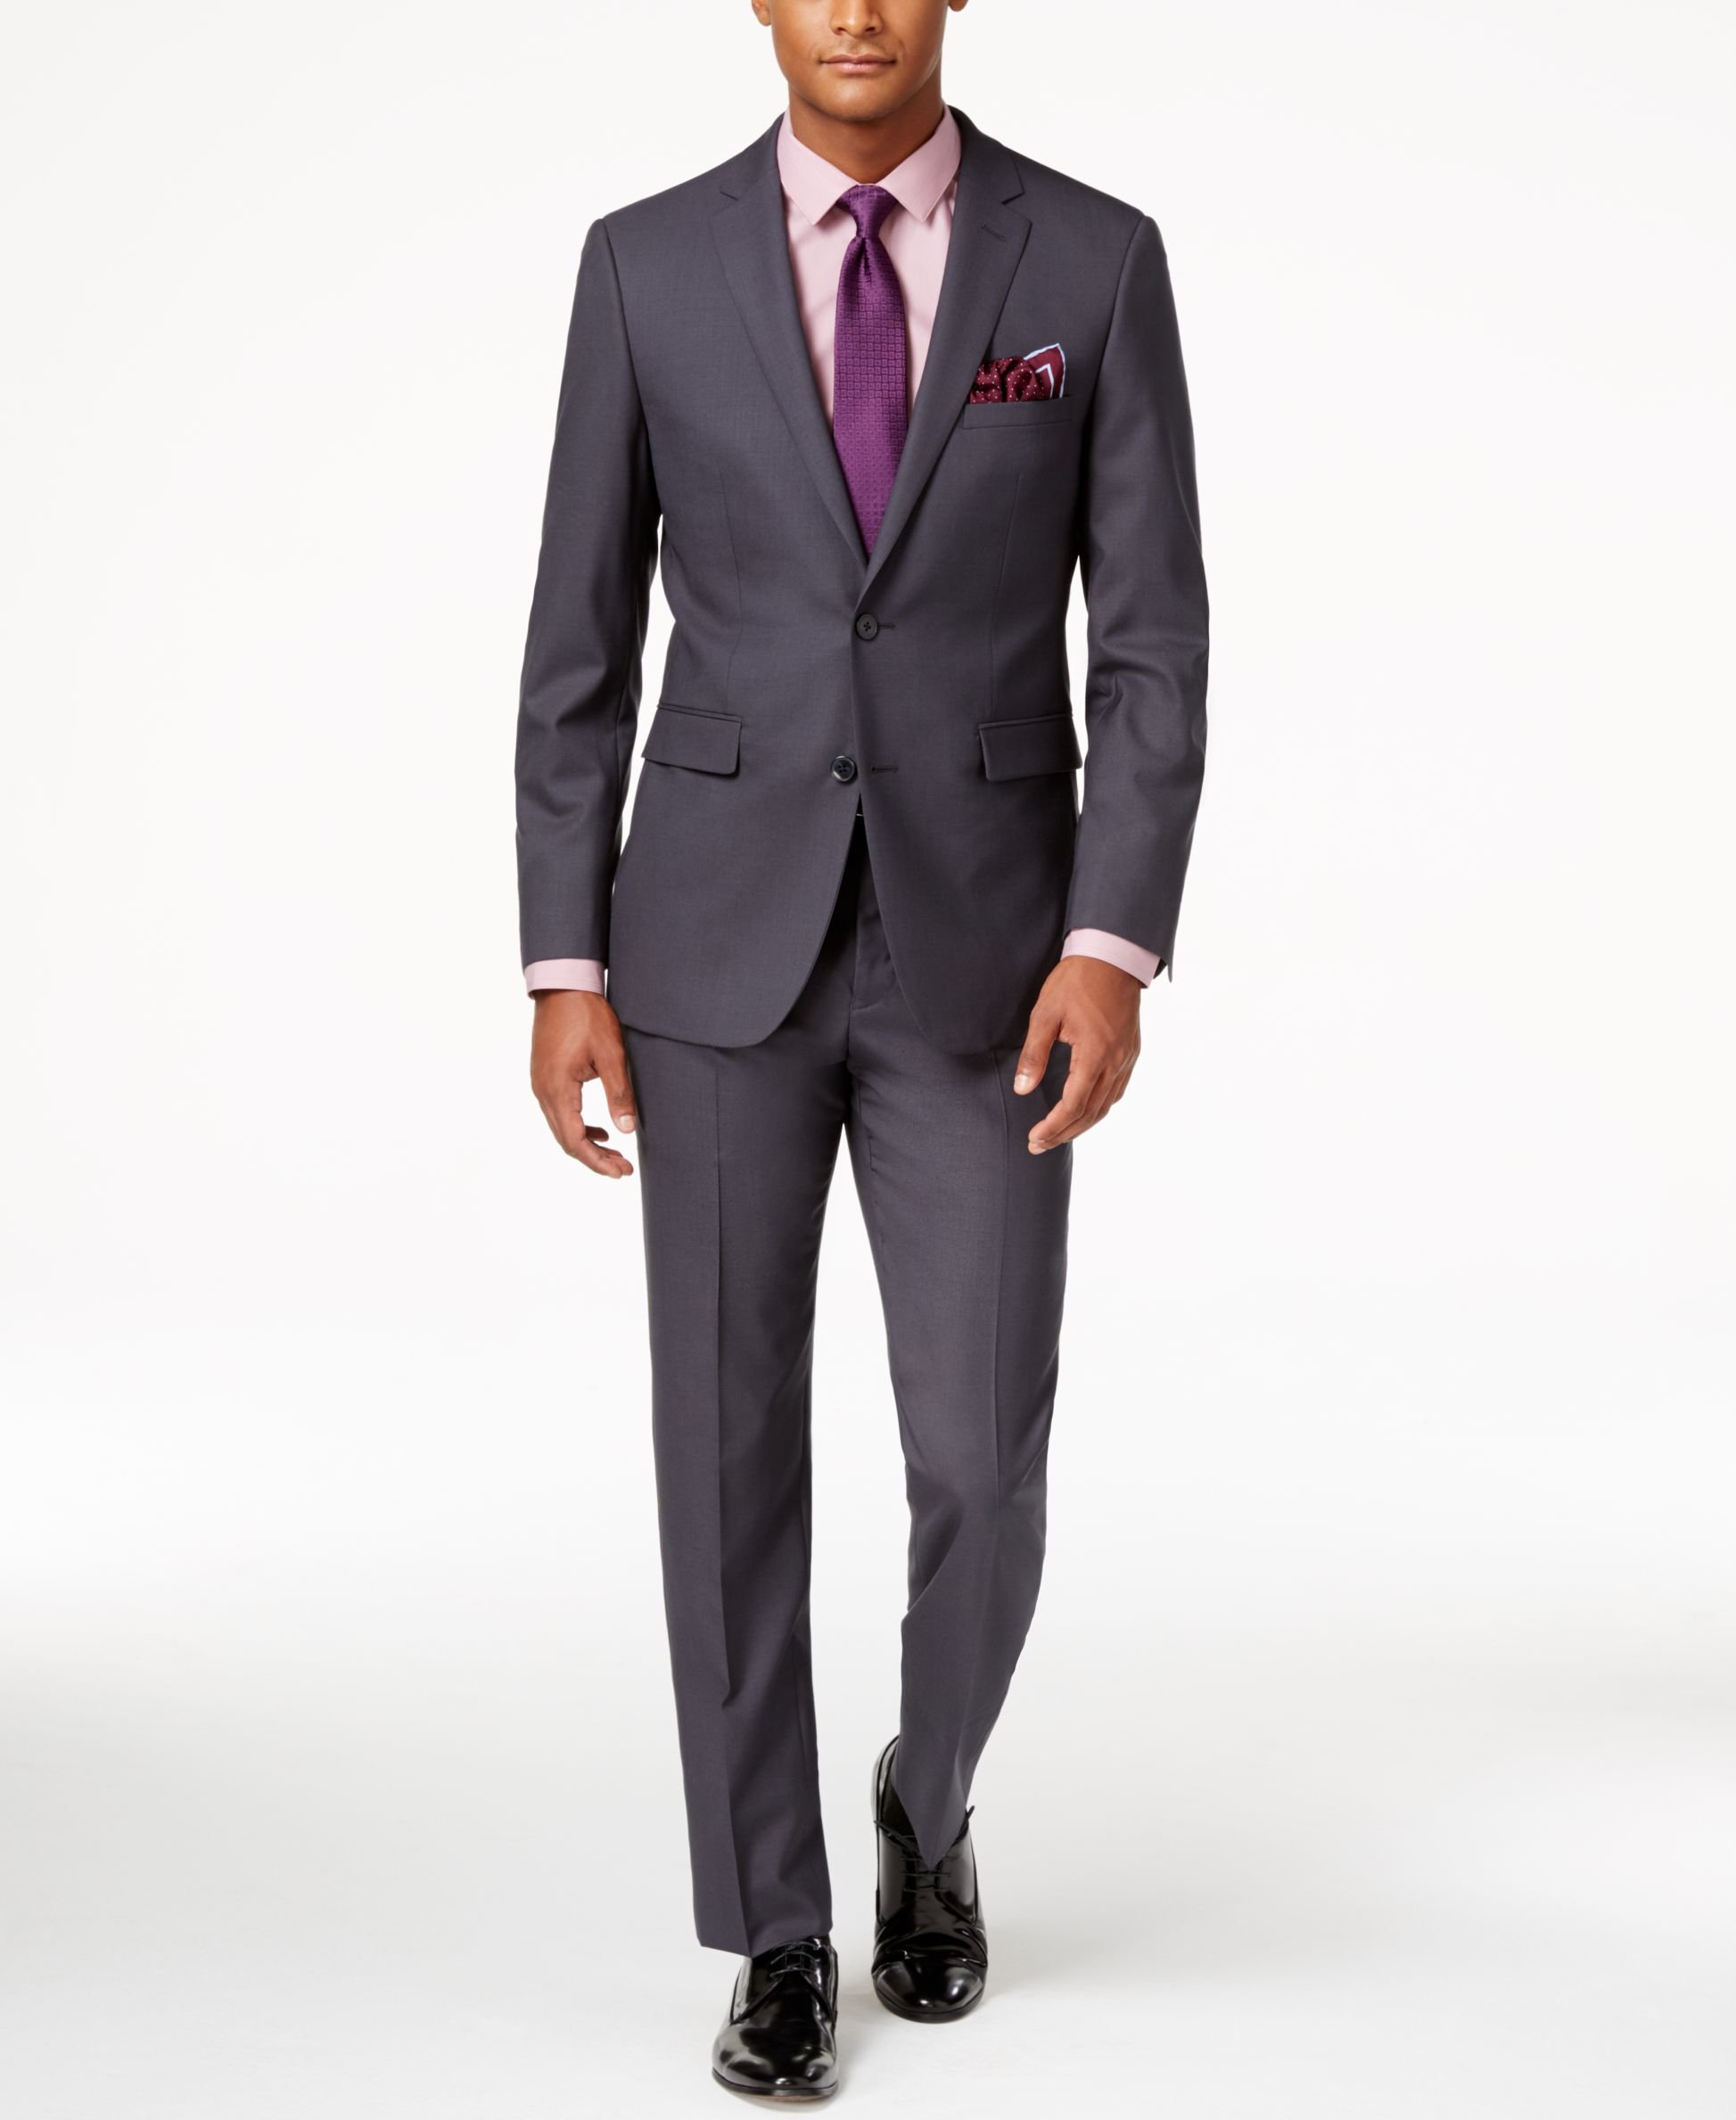 Vince camuto Men's Slim-fit Dusty Charcoal Suit in Pink ...